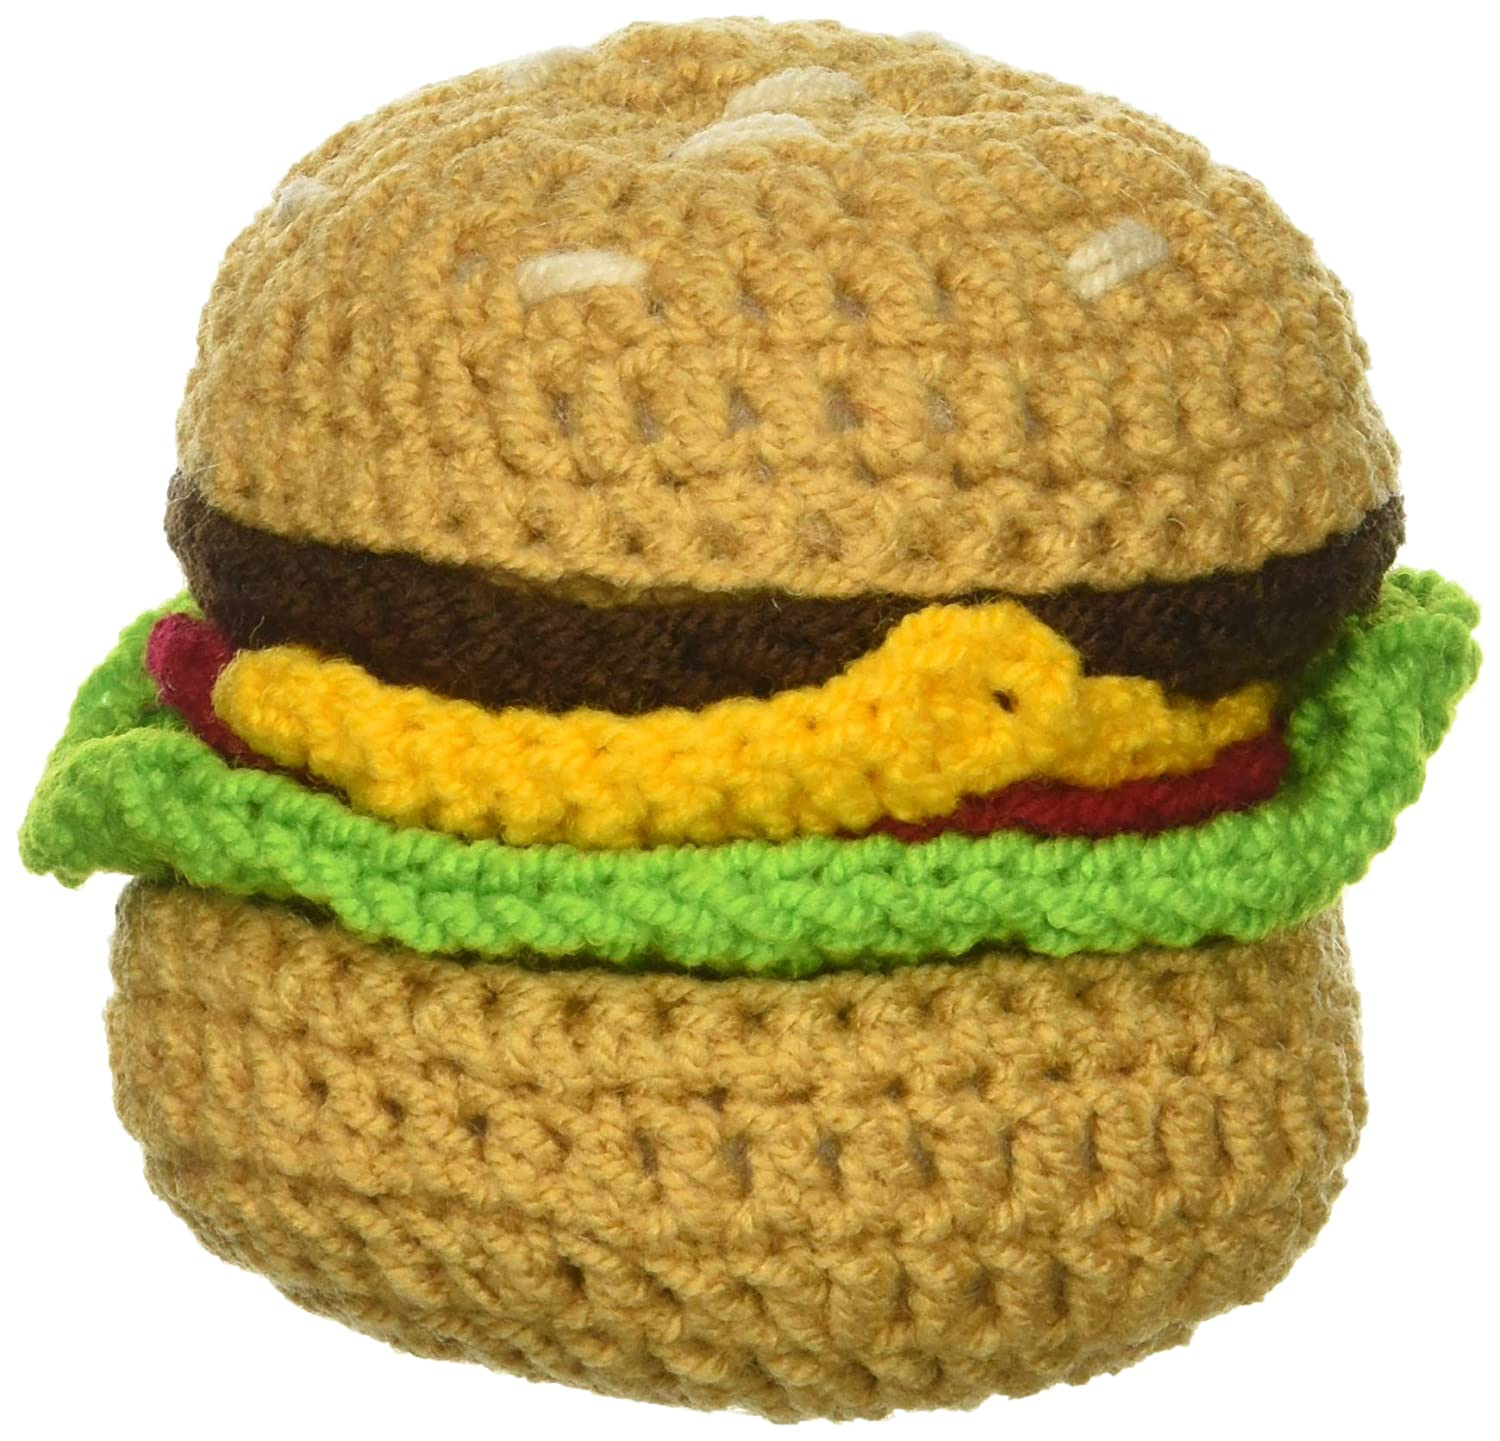 Silk Road Bazaar Knit, Hamburger Rattle KP08